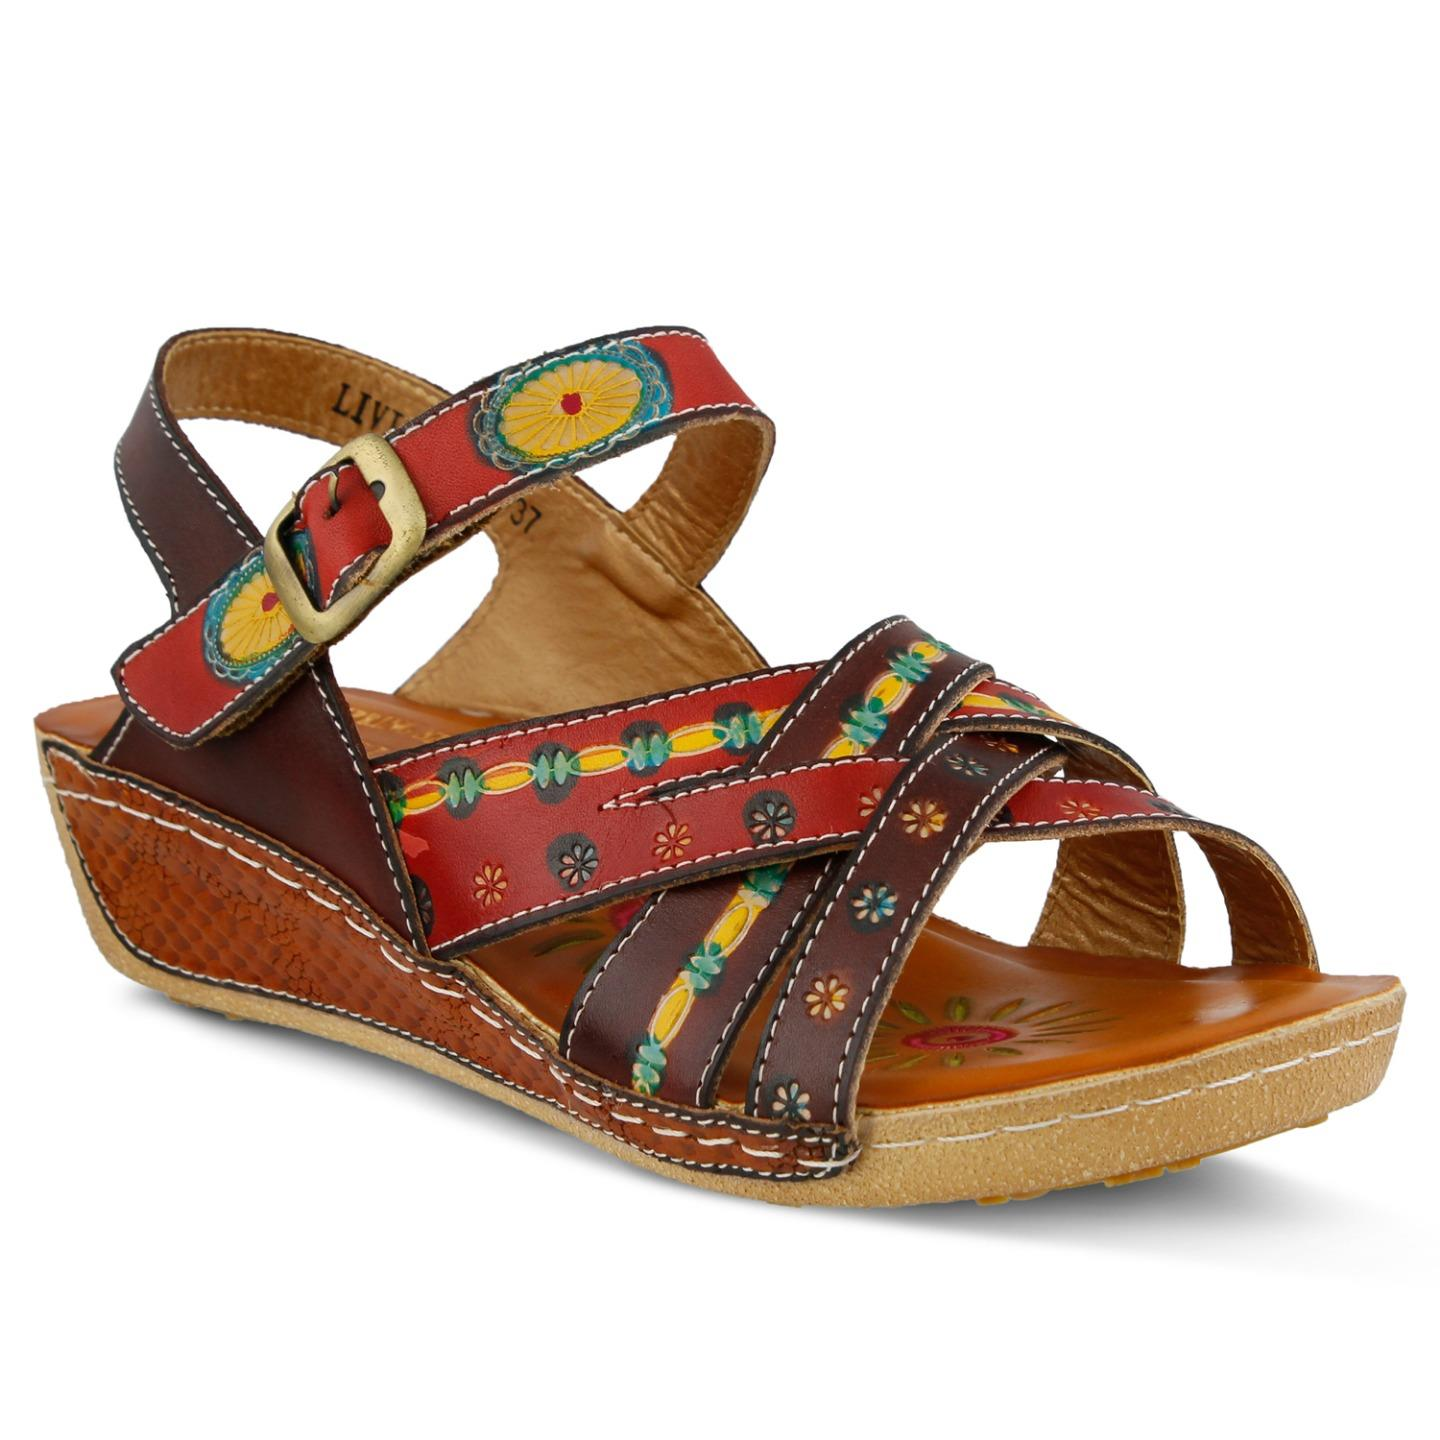 L'Artiste By Spring Step Livingstone Women's Sandals Camel Multi EU 37 US 7 by Spring Step